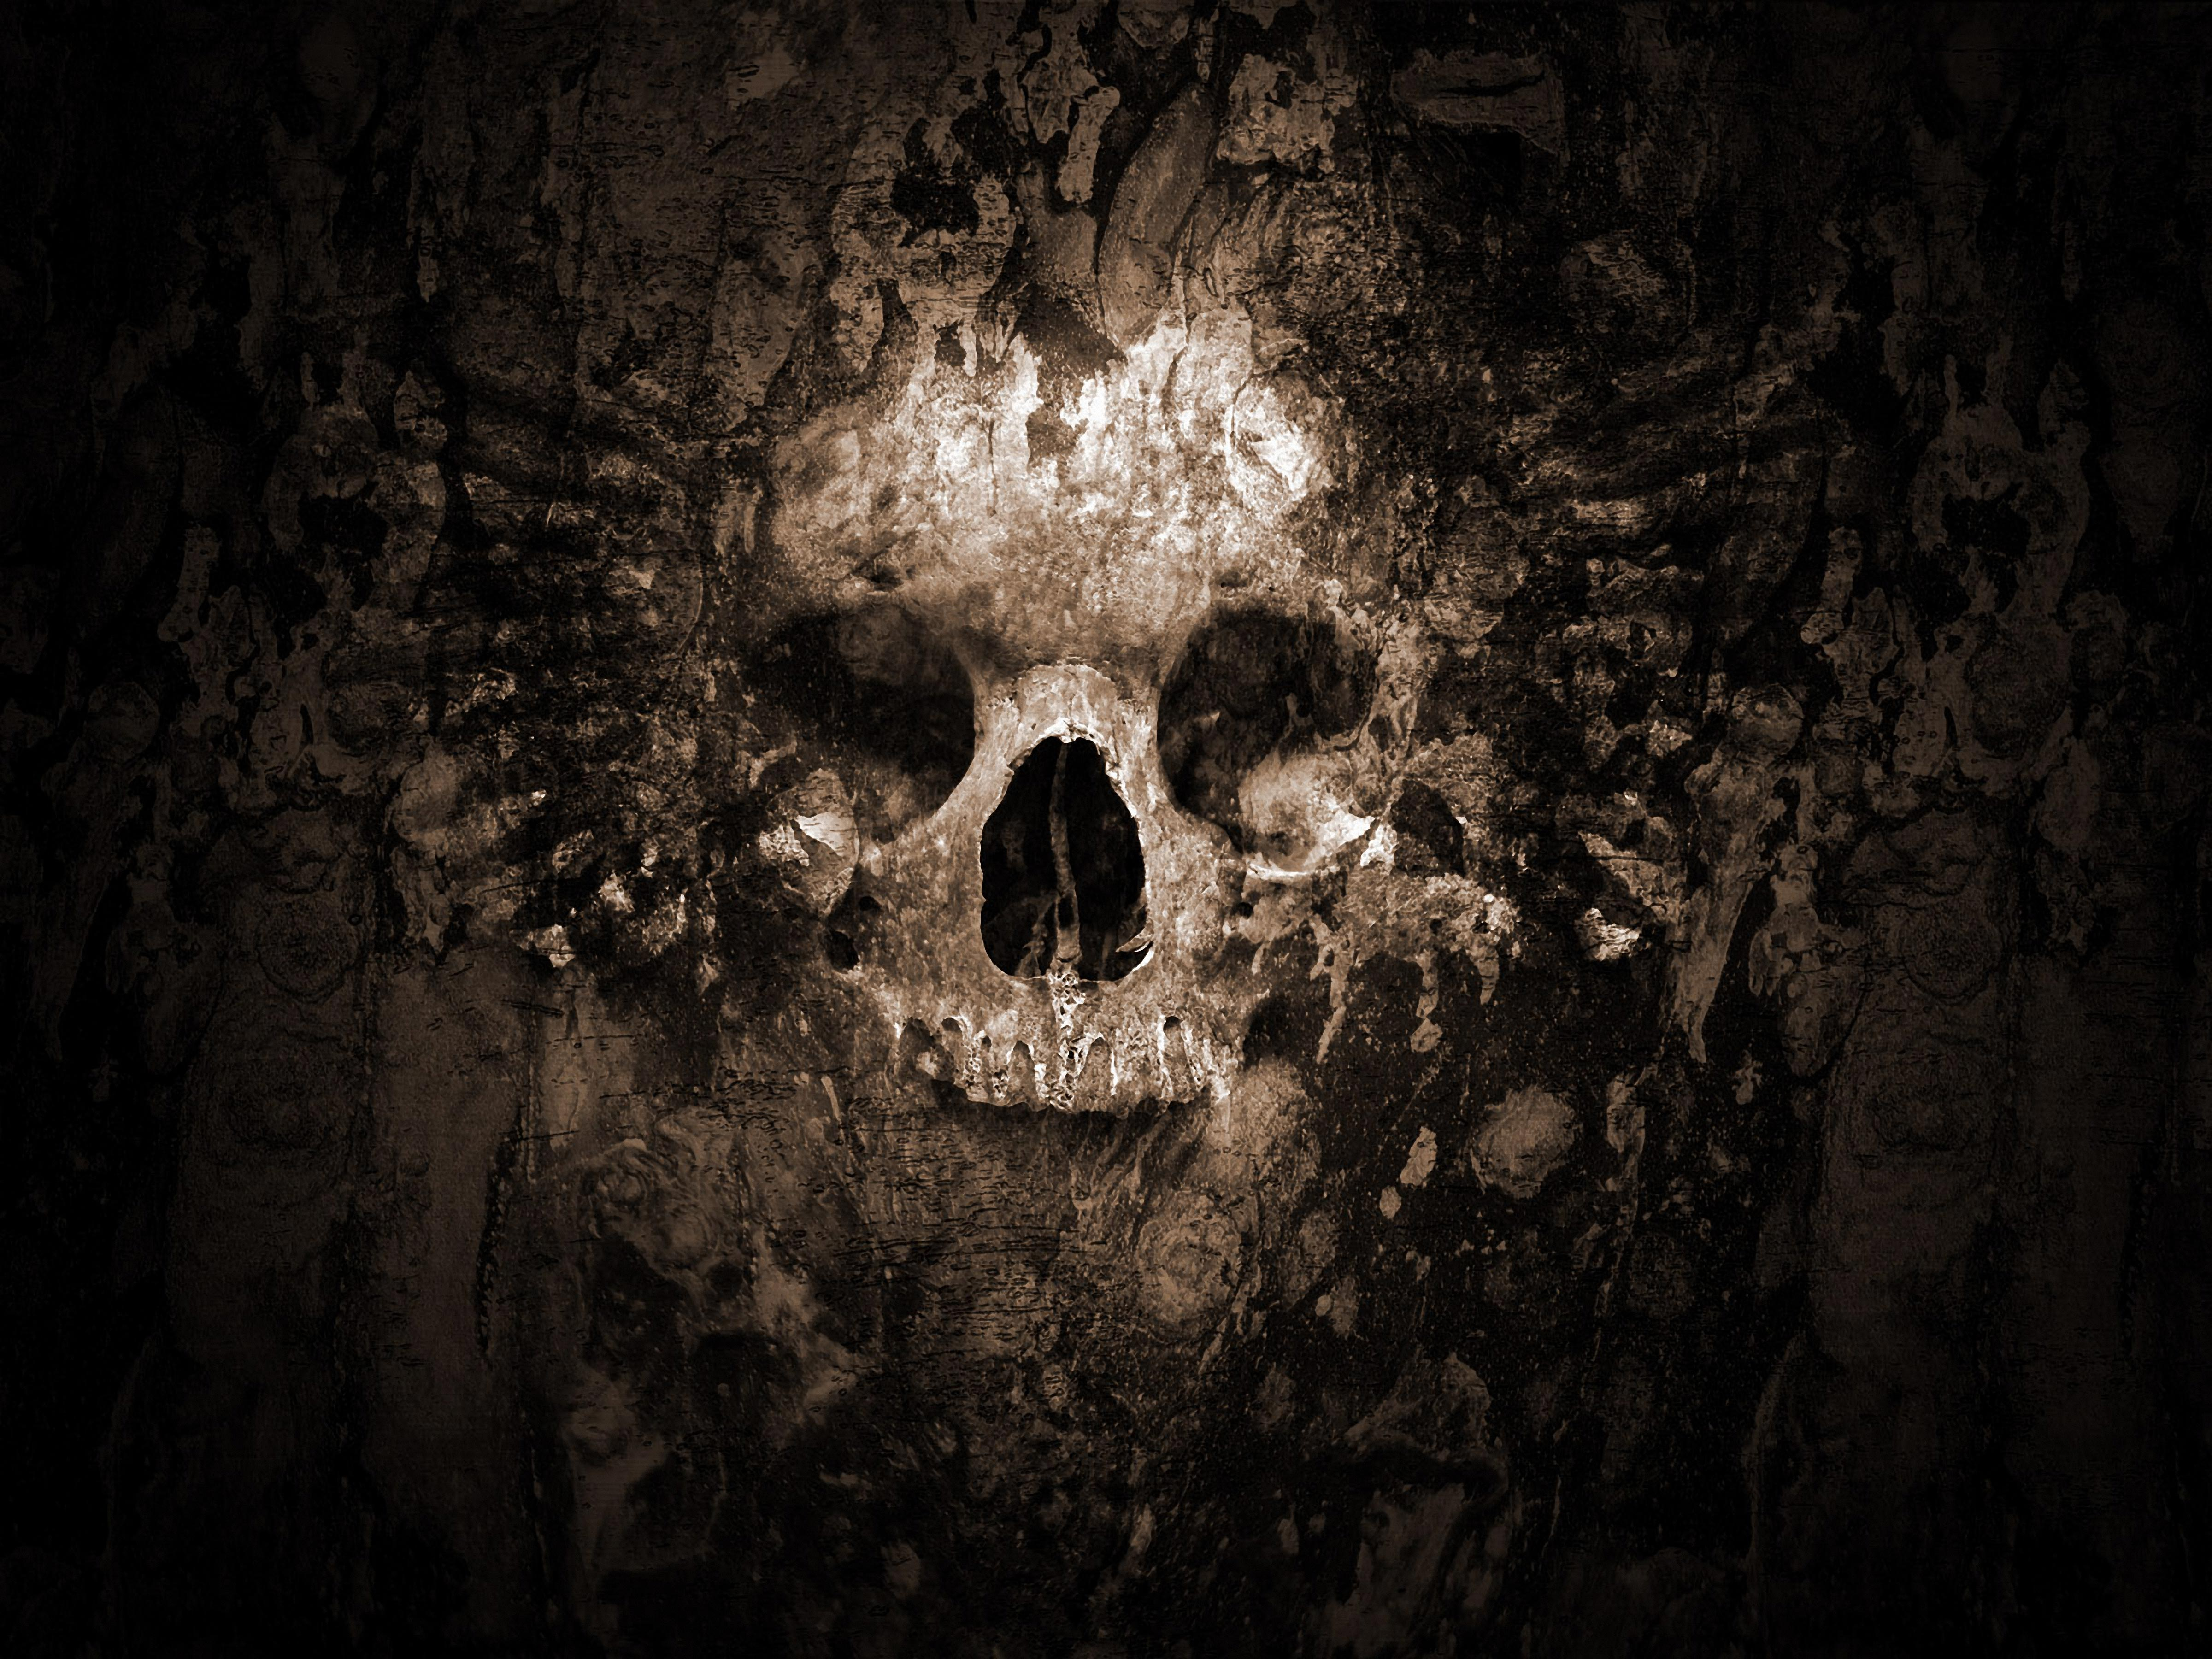 68 4k ultra hd skull wallpapers background images wallpaper abyss hd wallpaper background image id121830 voltagebd Choice Image